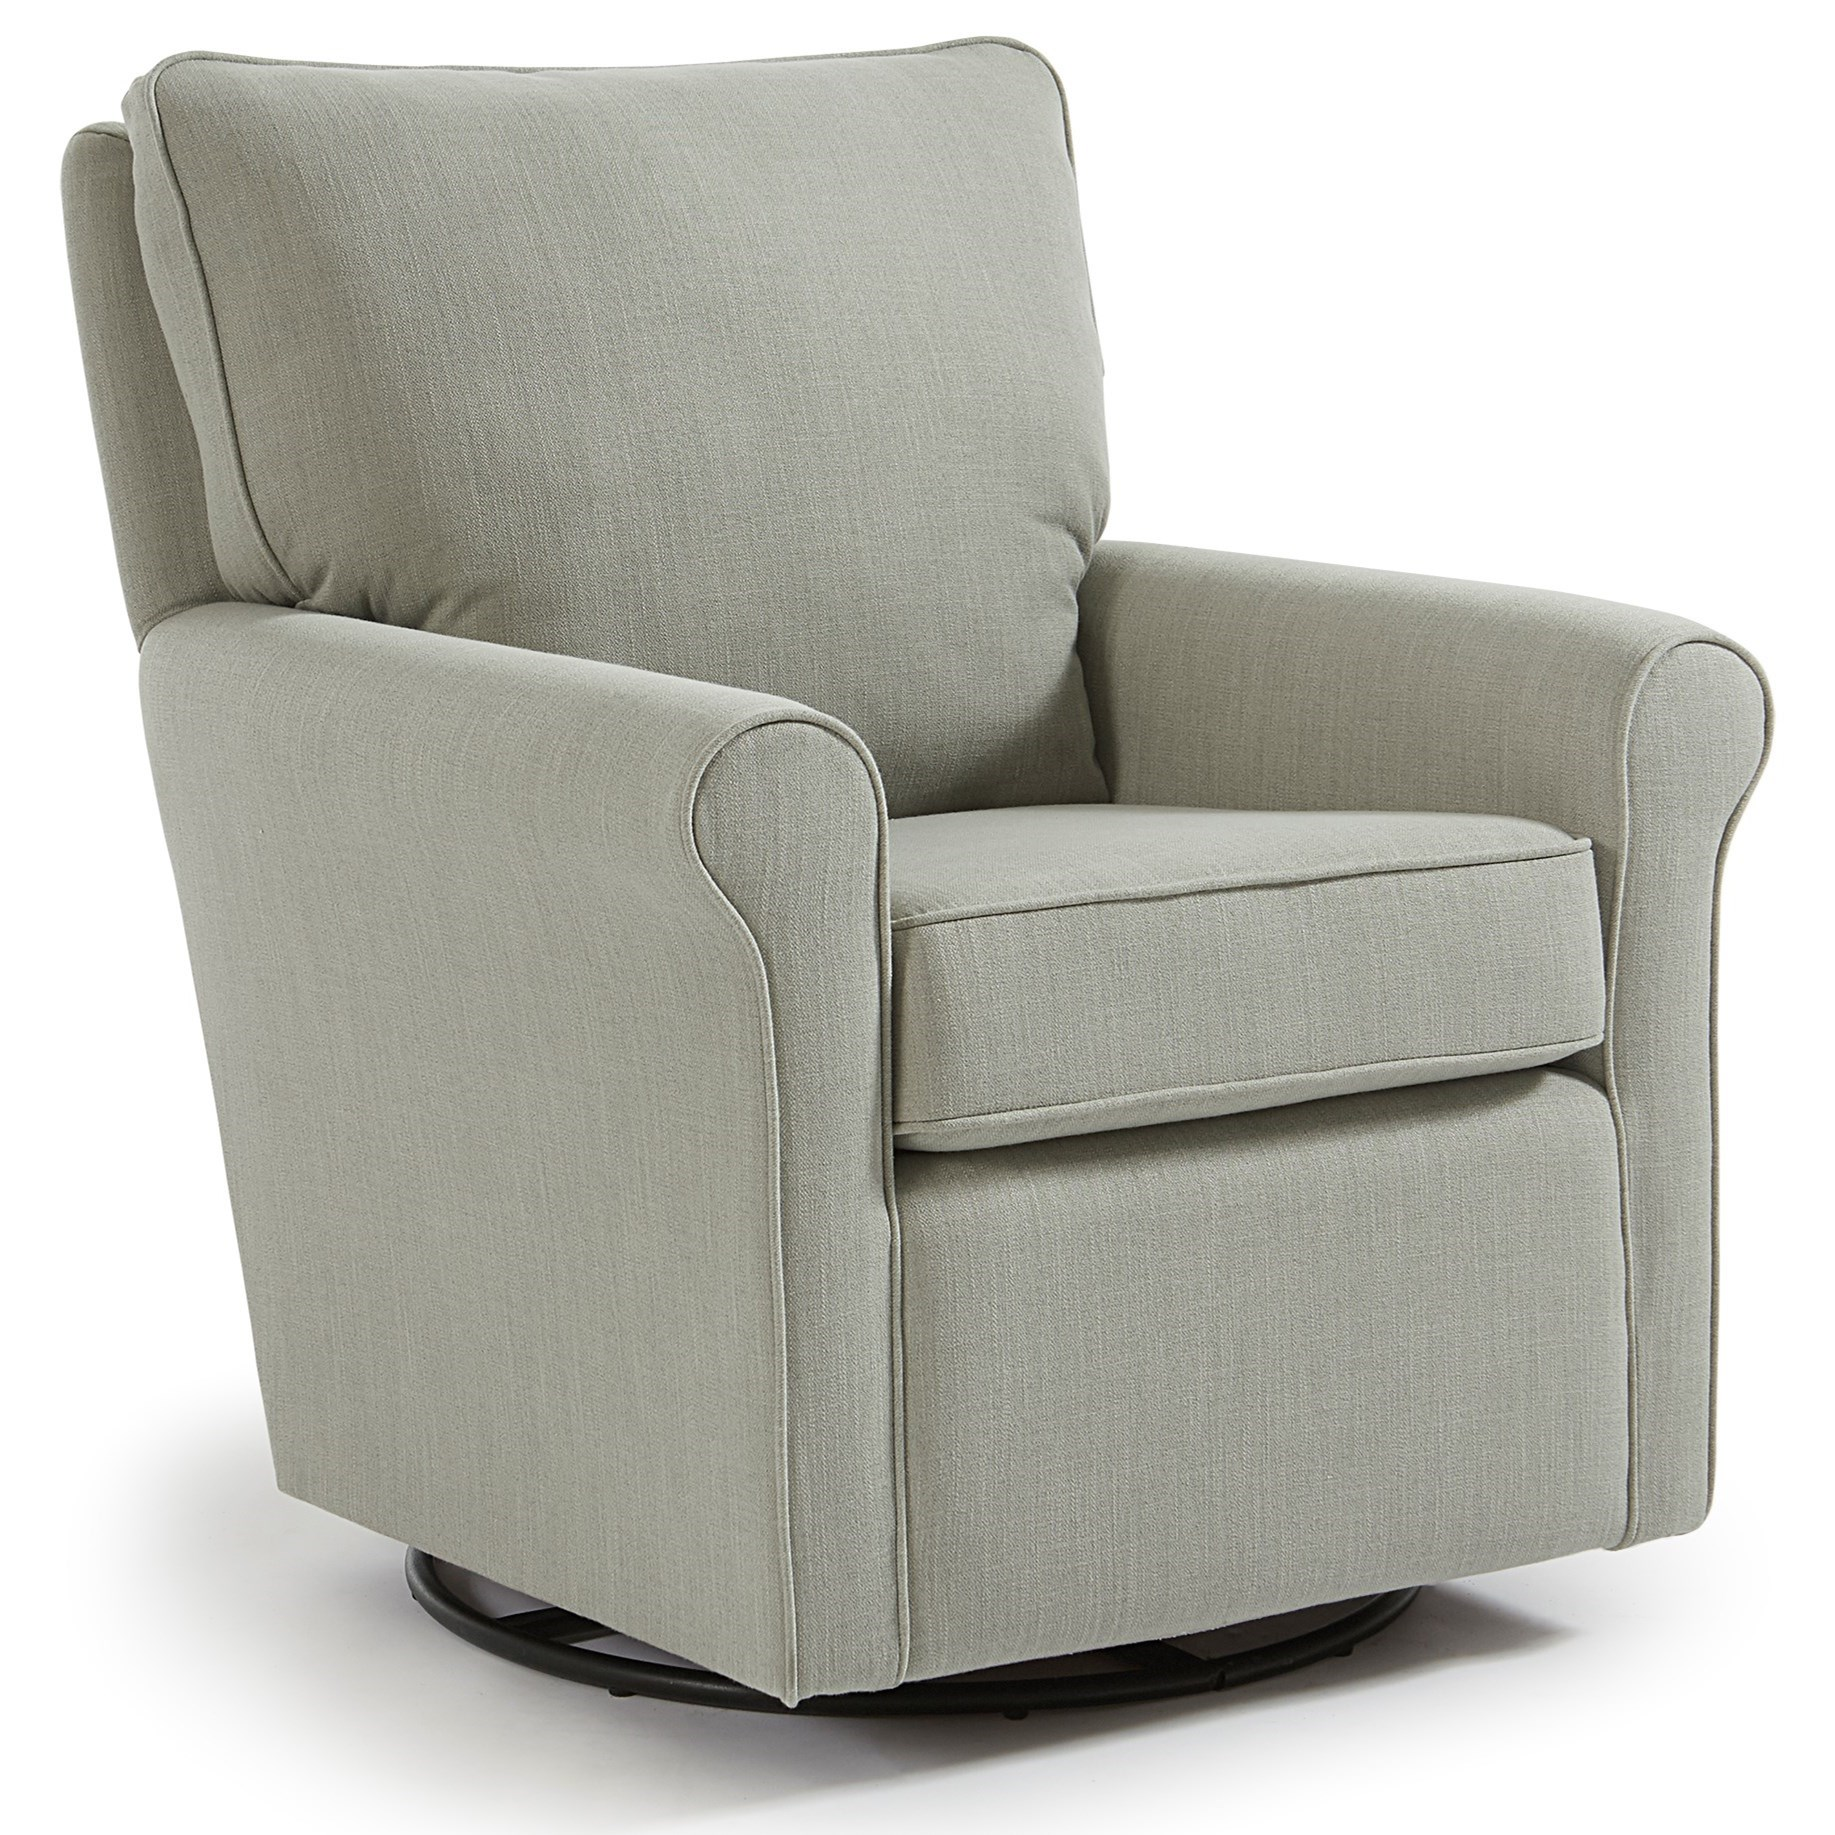 Kacey Swivel Glider Chair by Best Home Furnishings at Johnny Janosik